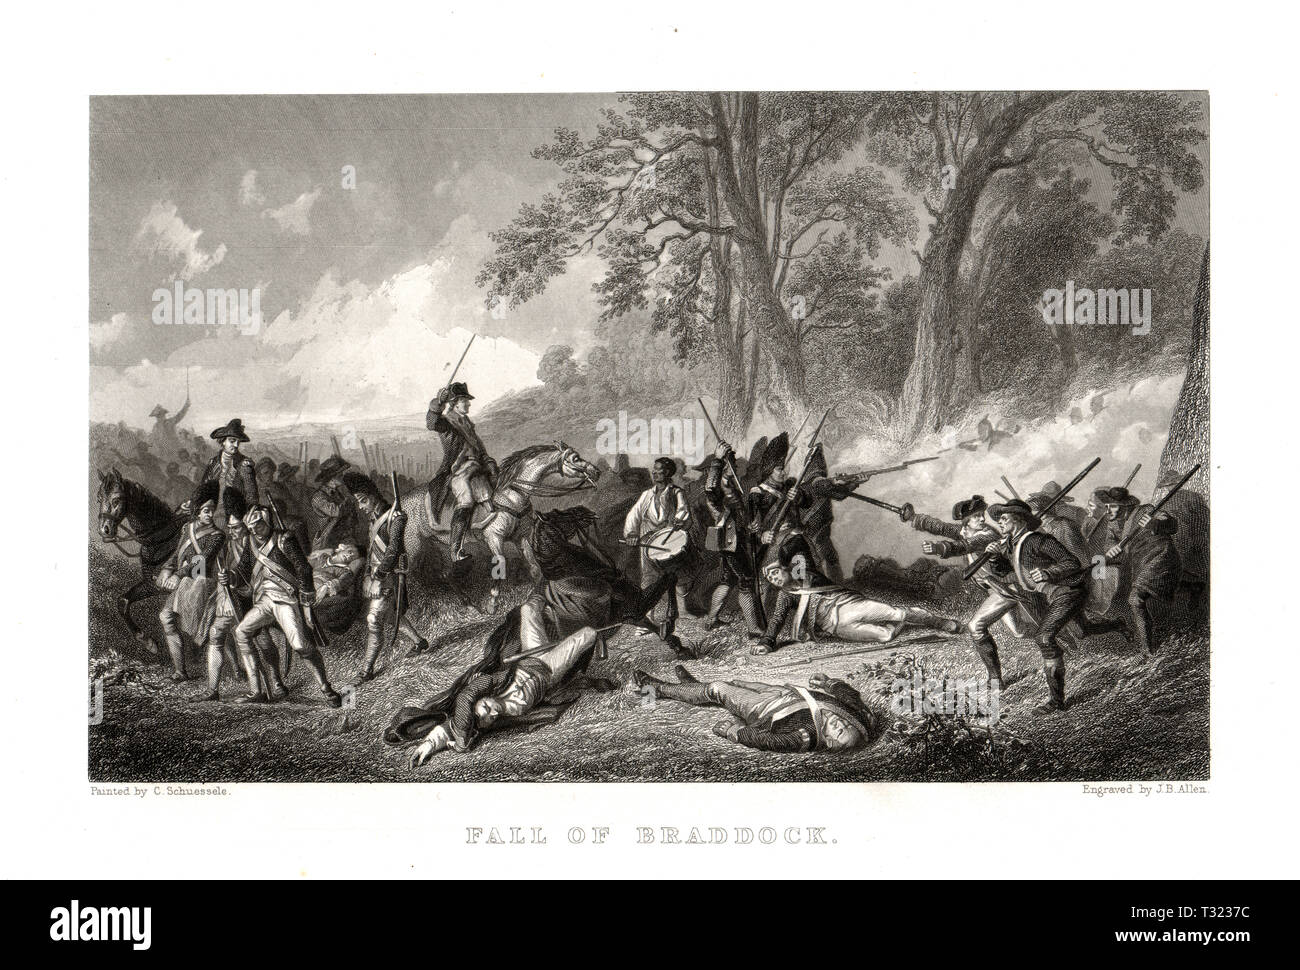 The Death of General Braddock at the Battle of Monogahela, French and Indian War - Stock Image